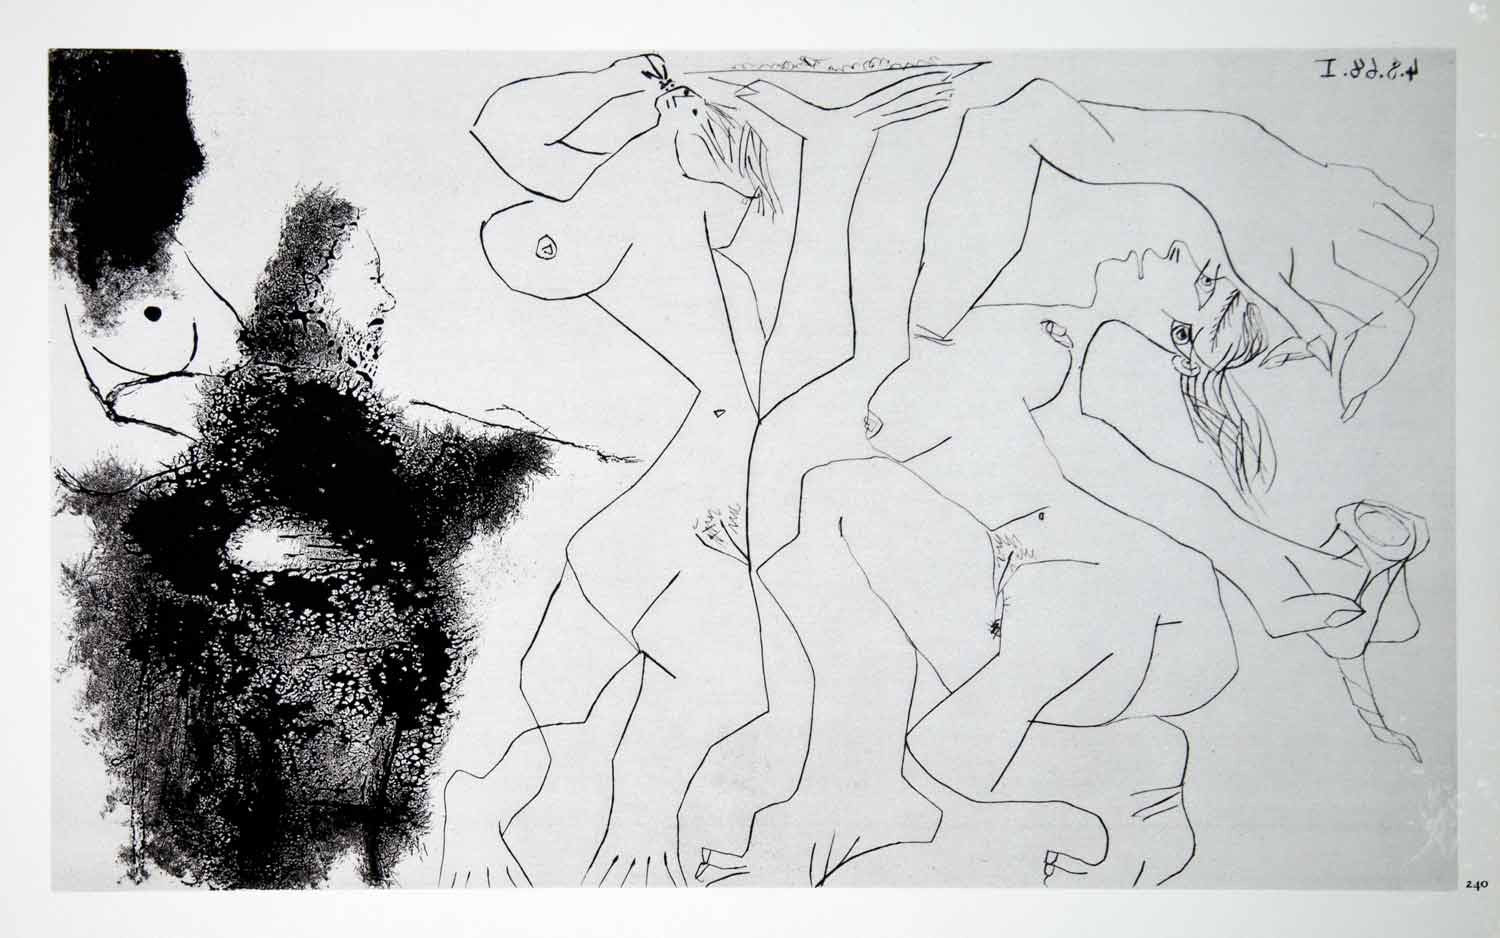 1970 Heliogravure Picasso Art Artist Painting Models Female Nudes Aquatint P347B - Period Paper